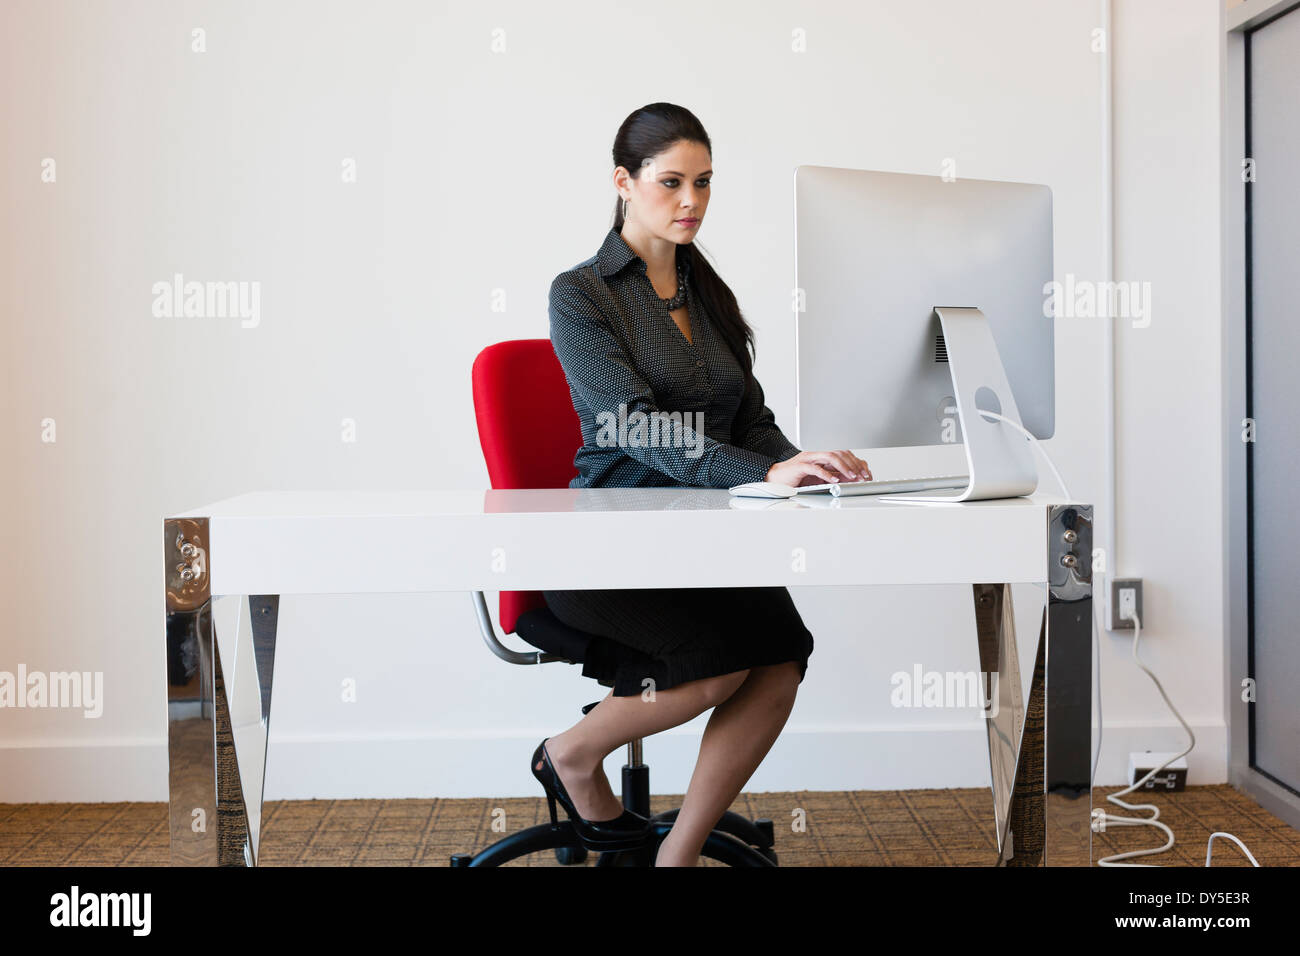 Young businesswoman sitting at desk, using computer - Stock Image